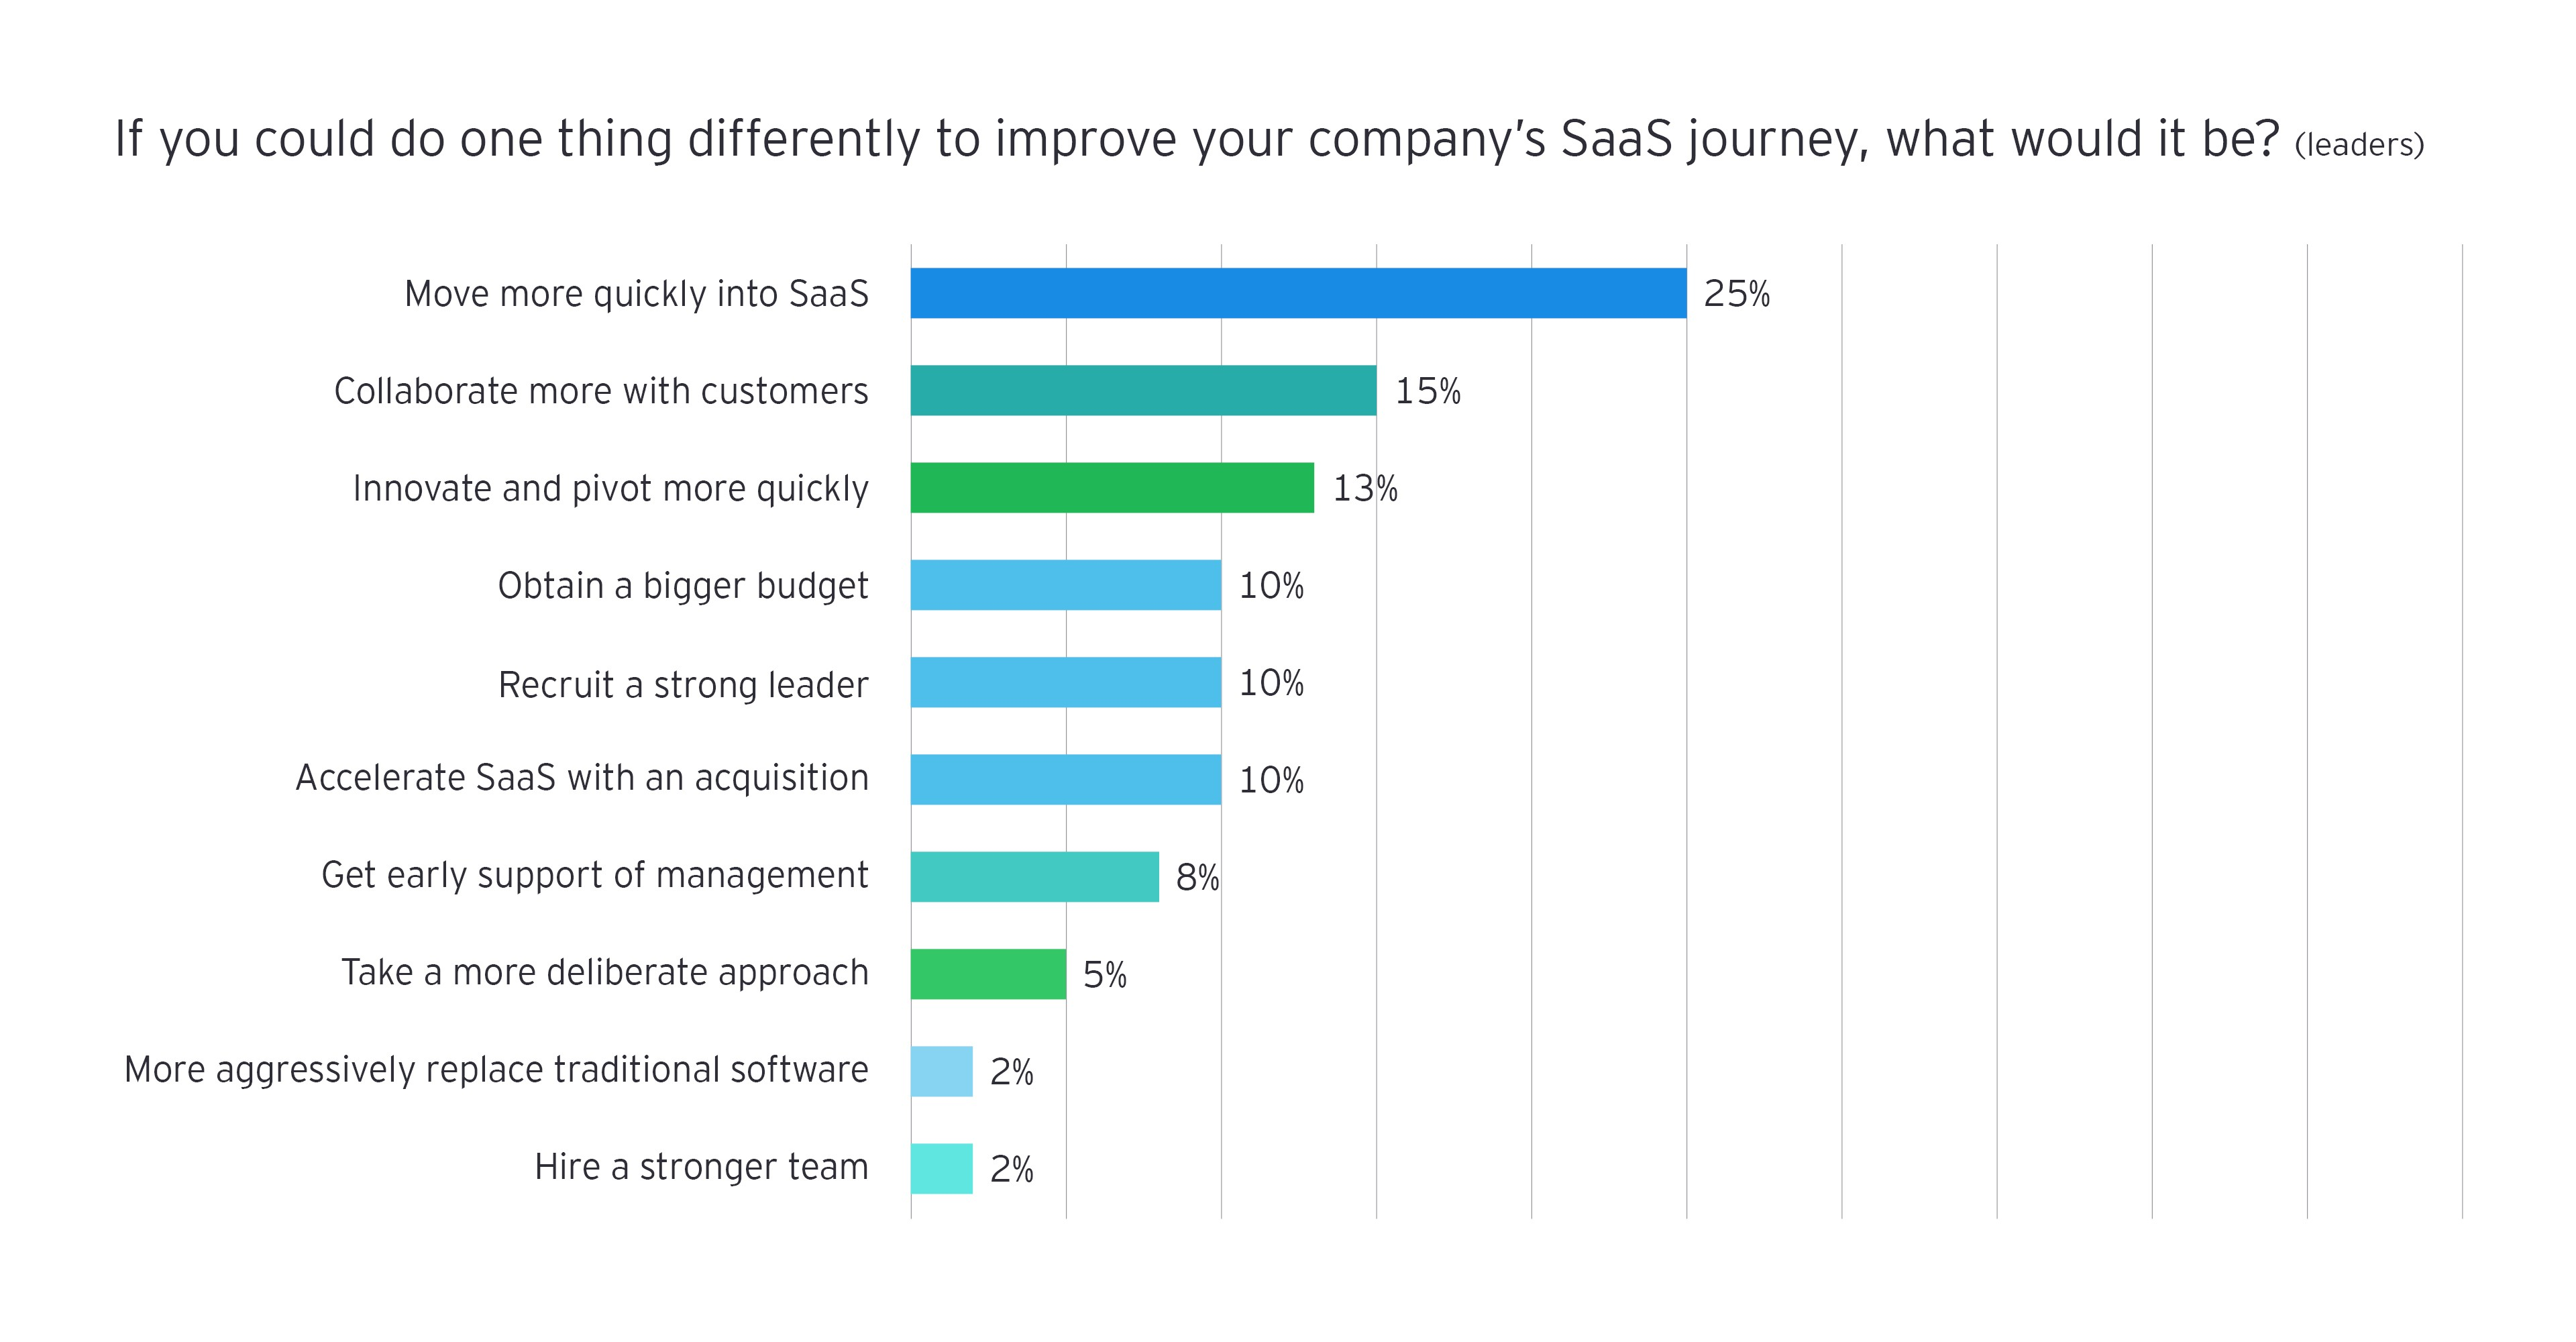 If you could do one thing differently to improve SaaS